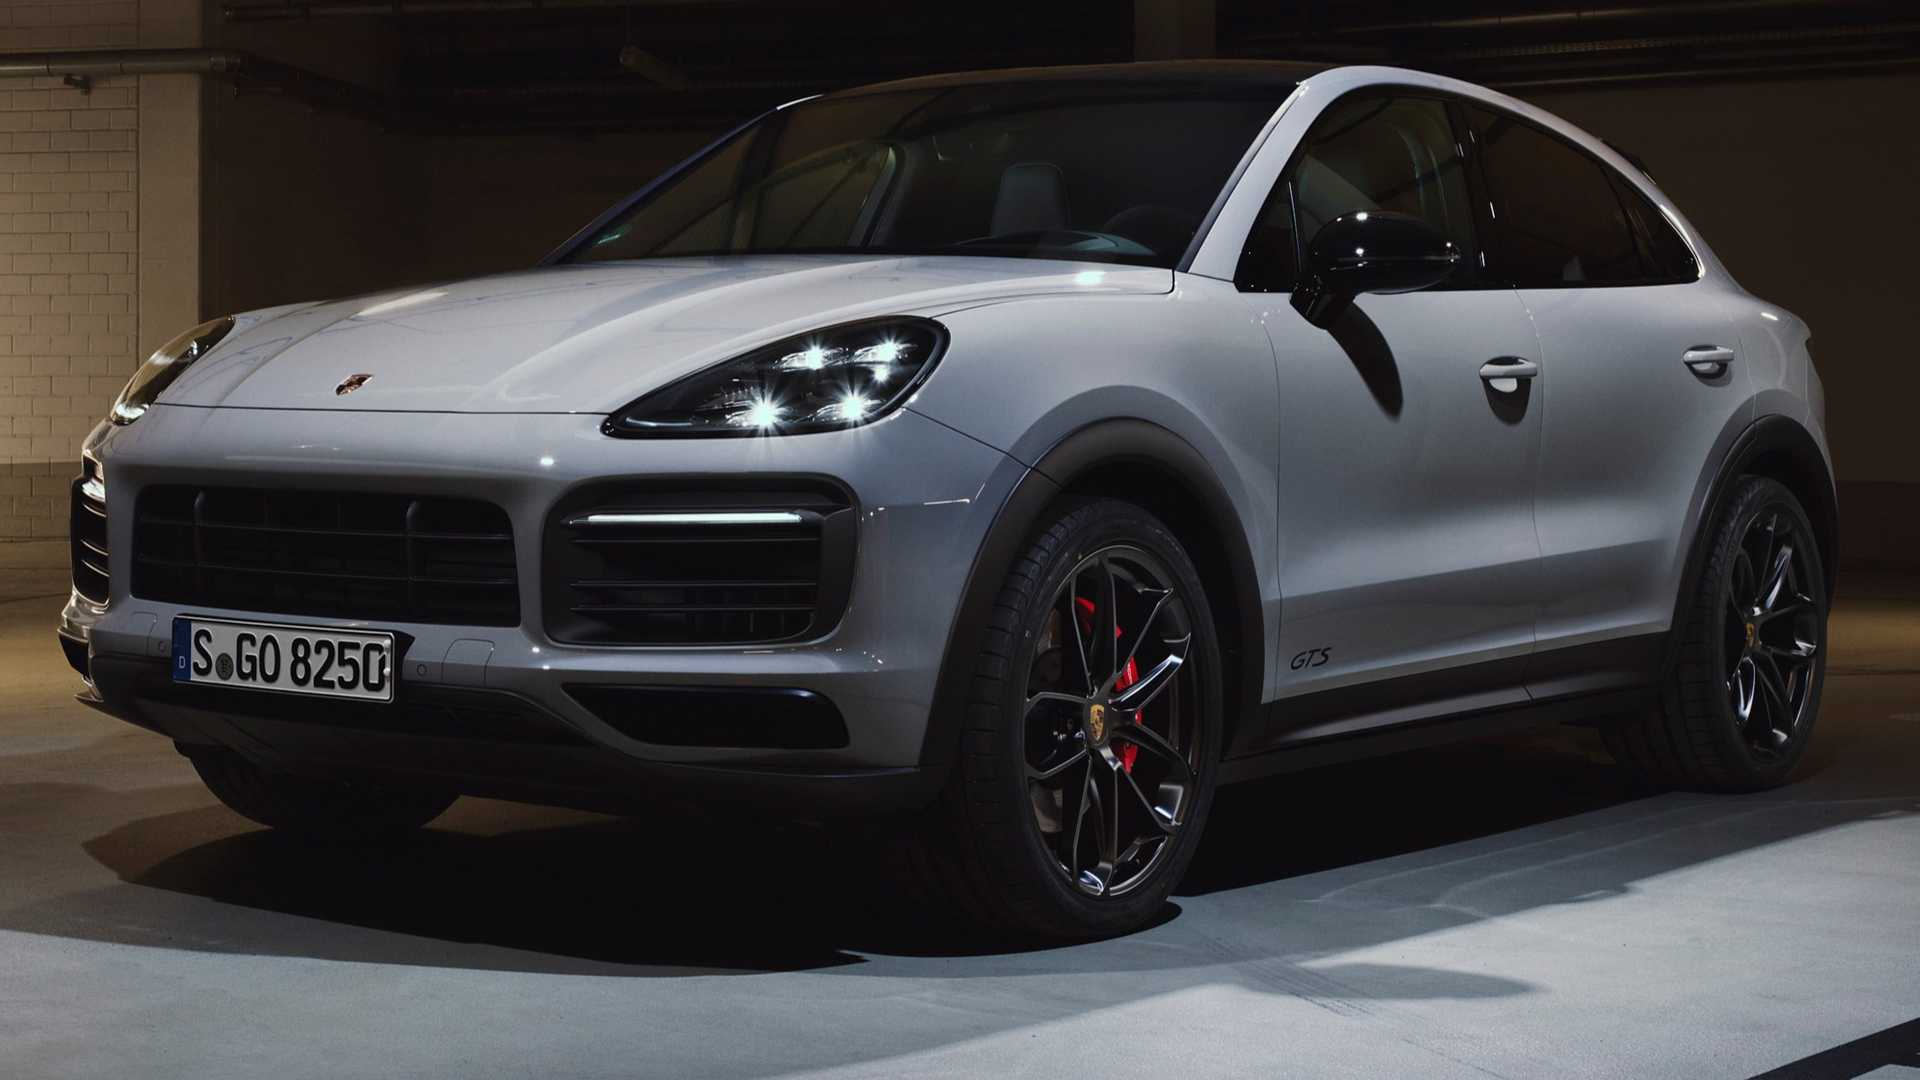 2021 Porsche Cayenne Gts Coupe Gts Debut With 453 Hp V8